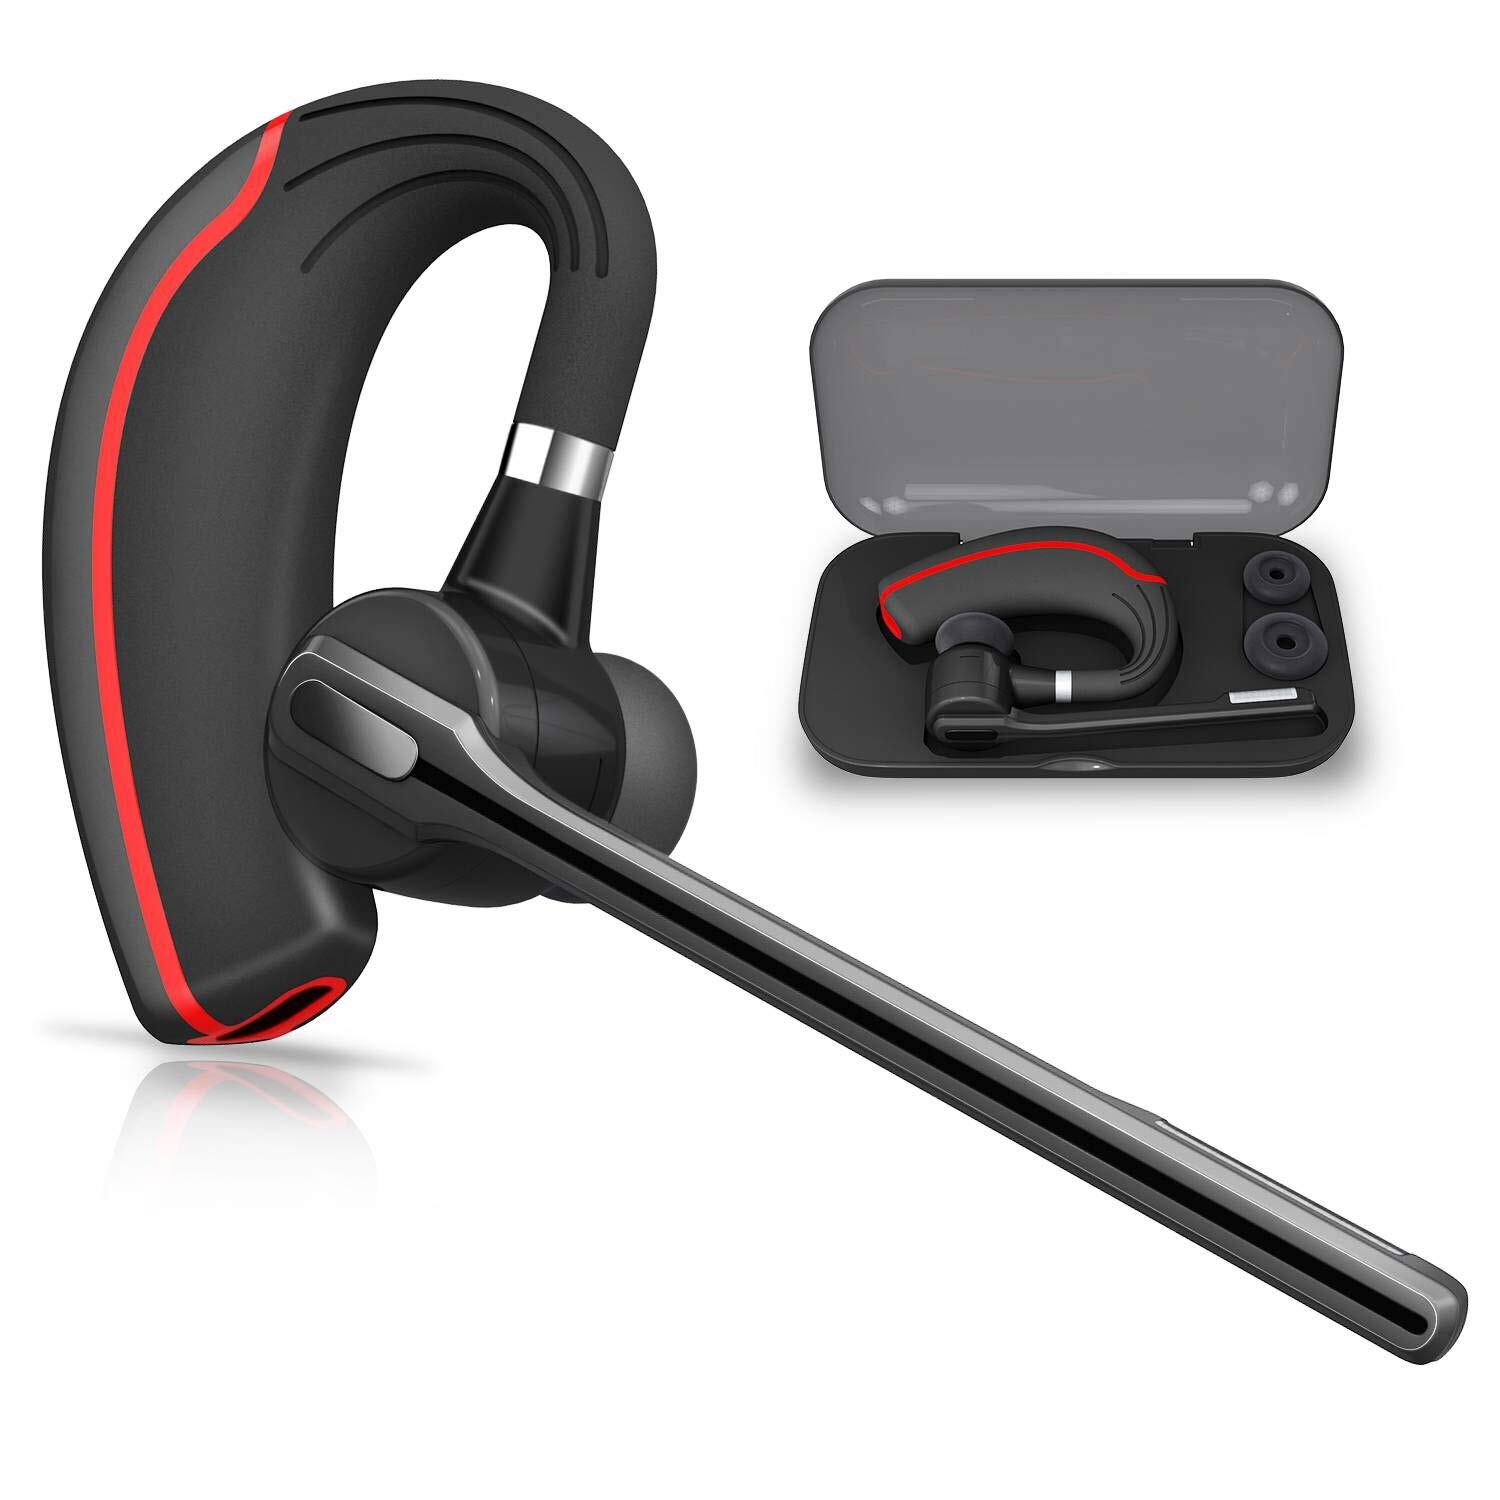 Bluetooth Headset HONSHOOP Bluetooth 4.1 in Ear Bluetooth Earpiece Wireless Headphones Noise Reduction Earphones with Mic for Business/Workout/Driving